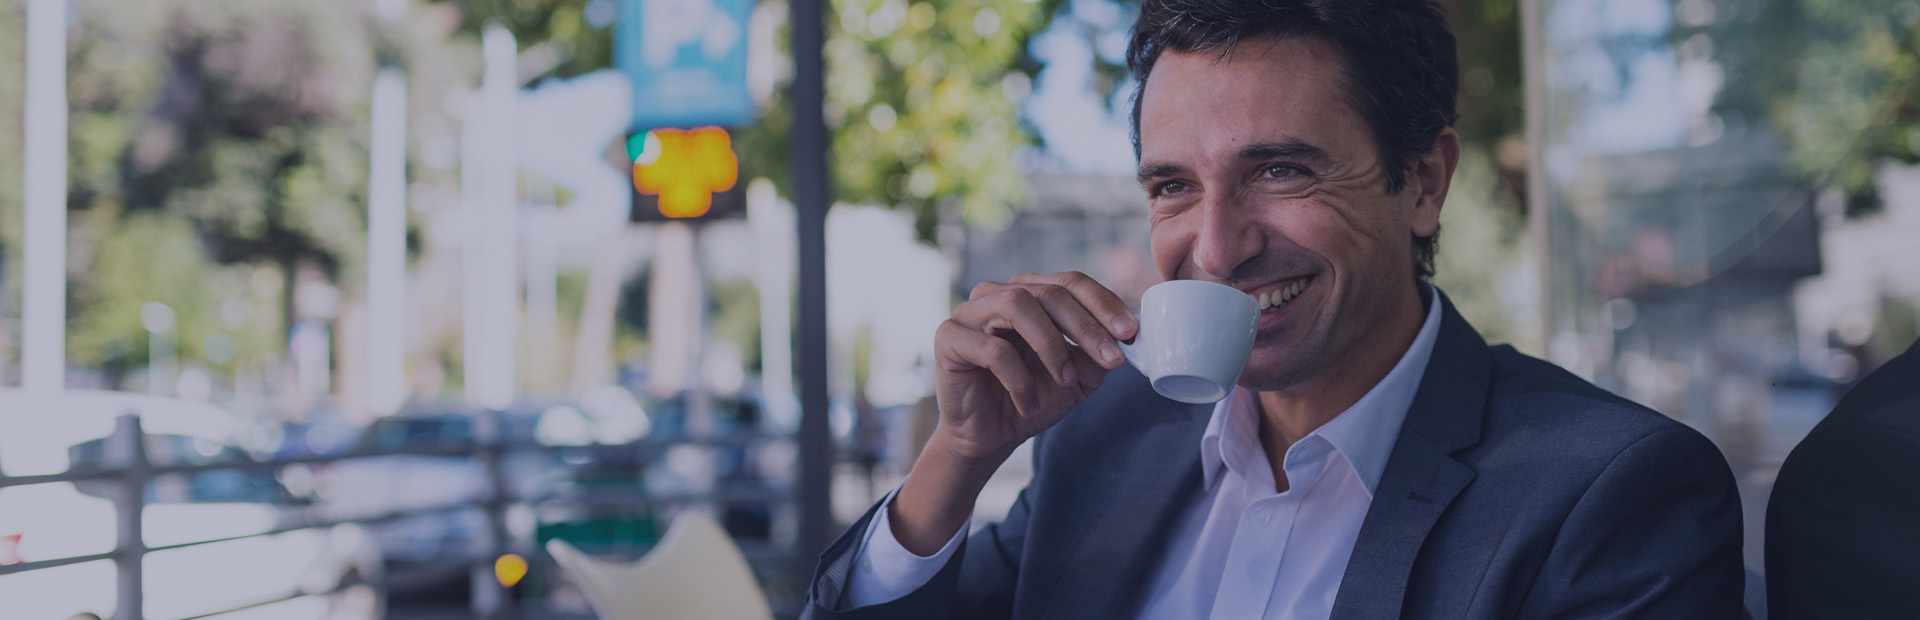 A man in his 40s sips an espresso on an outdoor terrace with a smile, as he knows how to remove stains from dentures thanks to Fixodent.